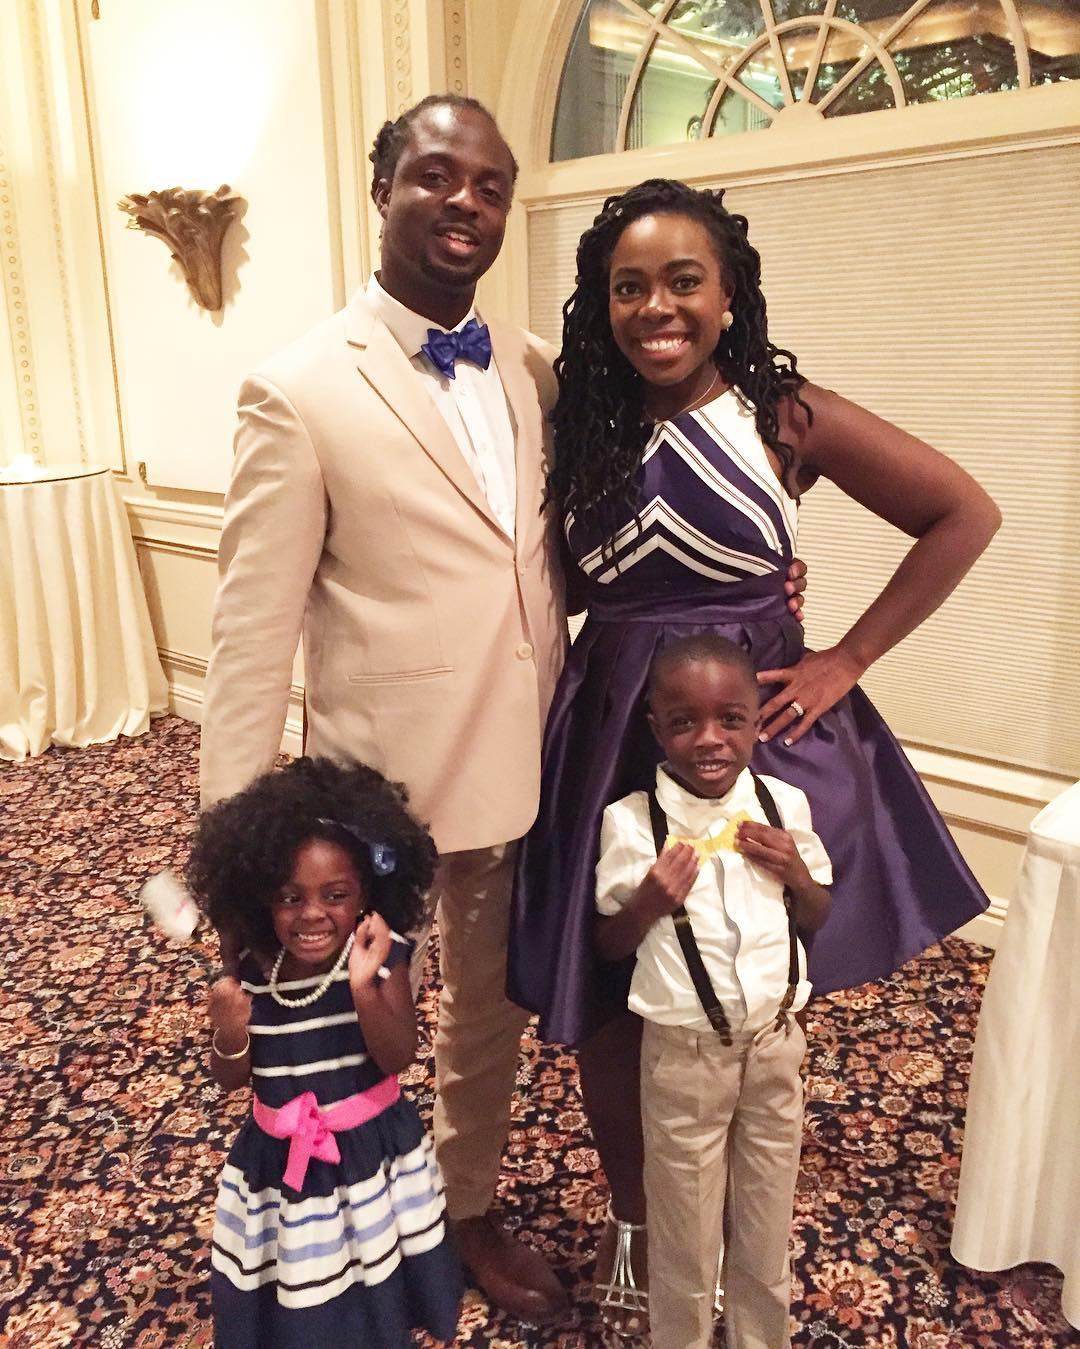 My #squad and I at hubbys cousins wedding. Both of my guys were in the wedding. We all had so much fun. #FlashBackFriday #fbf #fb #flashback #family #love #wifelife #momlife #myladybugElle #mymunchkinJJ #JenellBStewart